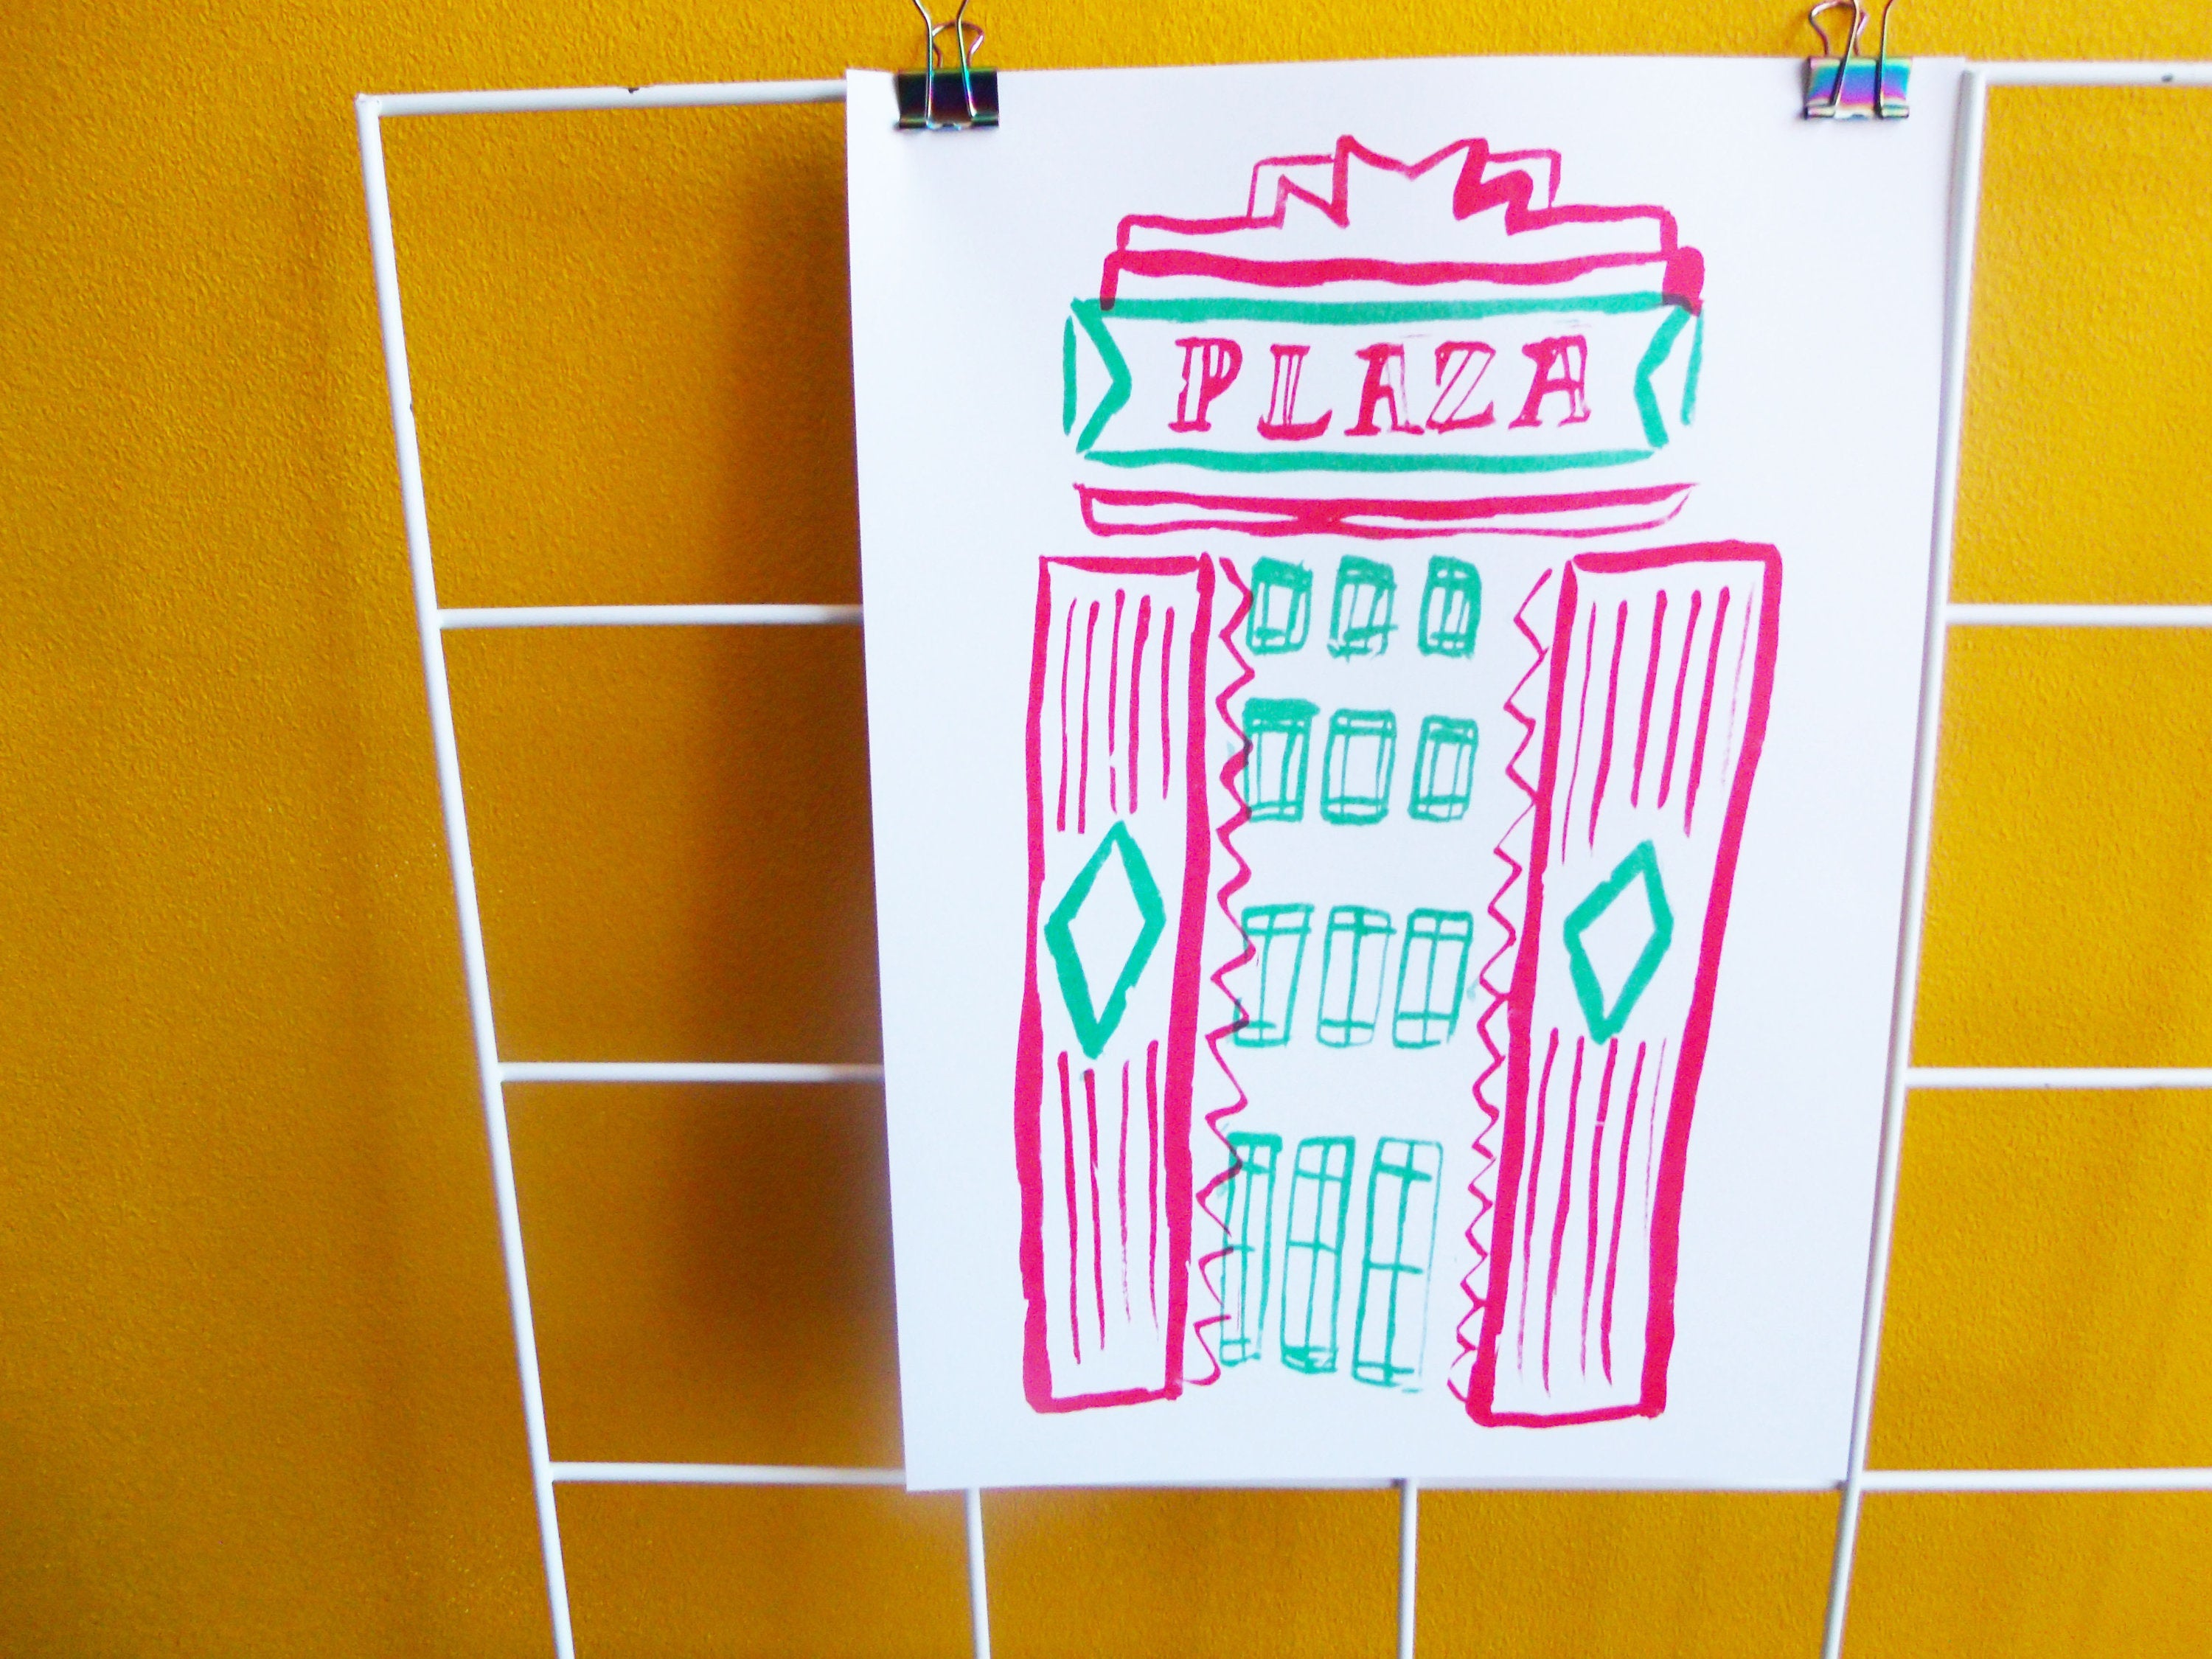 Stockport Plaza A4 Risograph Print